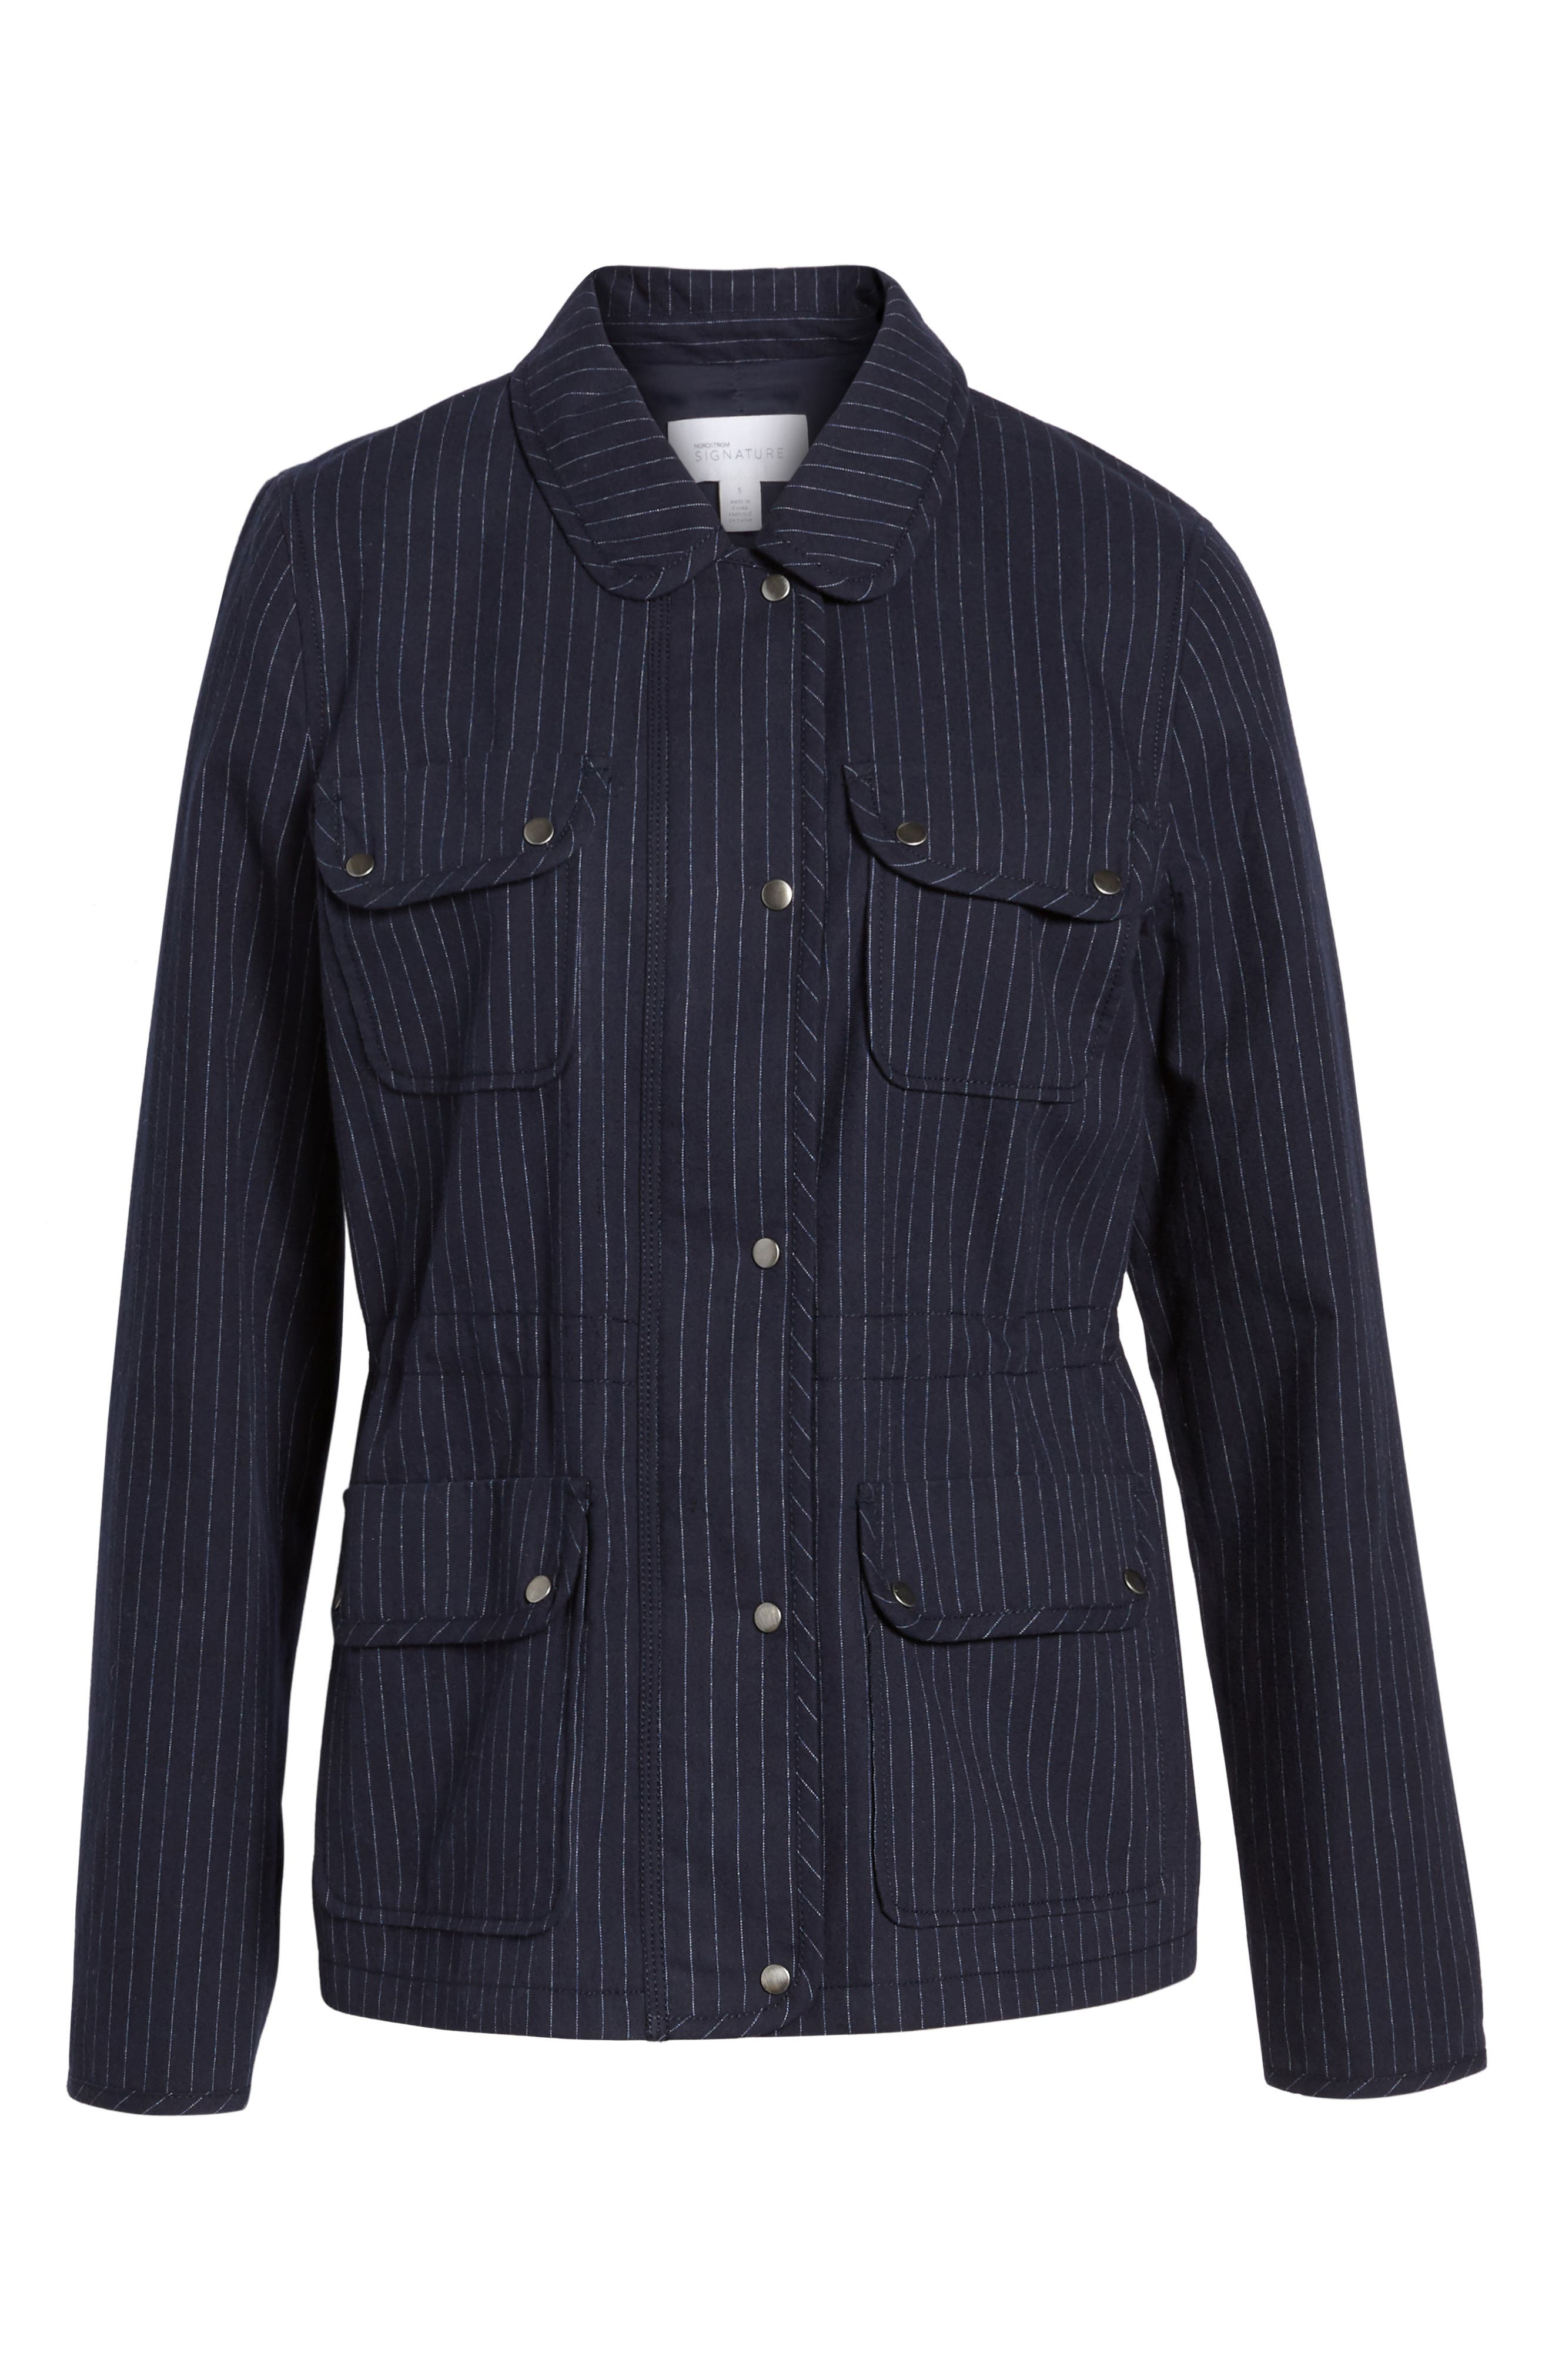 Pinstripe Utility Jacket,                             Alternate thumbnail 6, color,                             Navy- Ivory Pinstripe